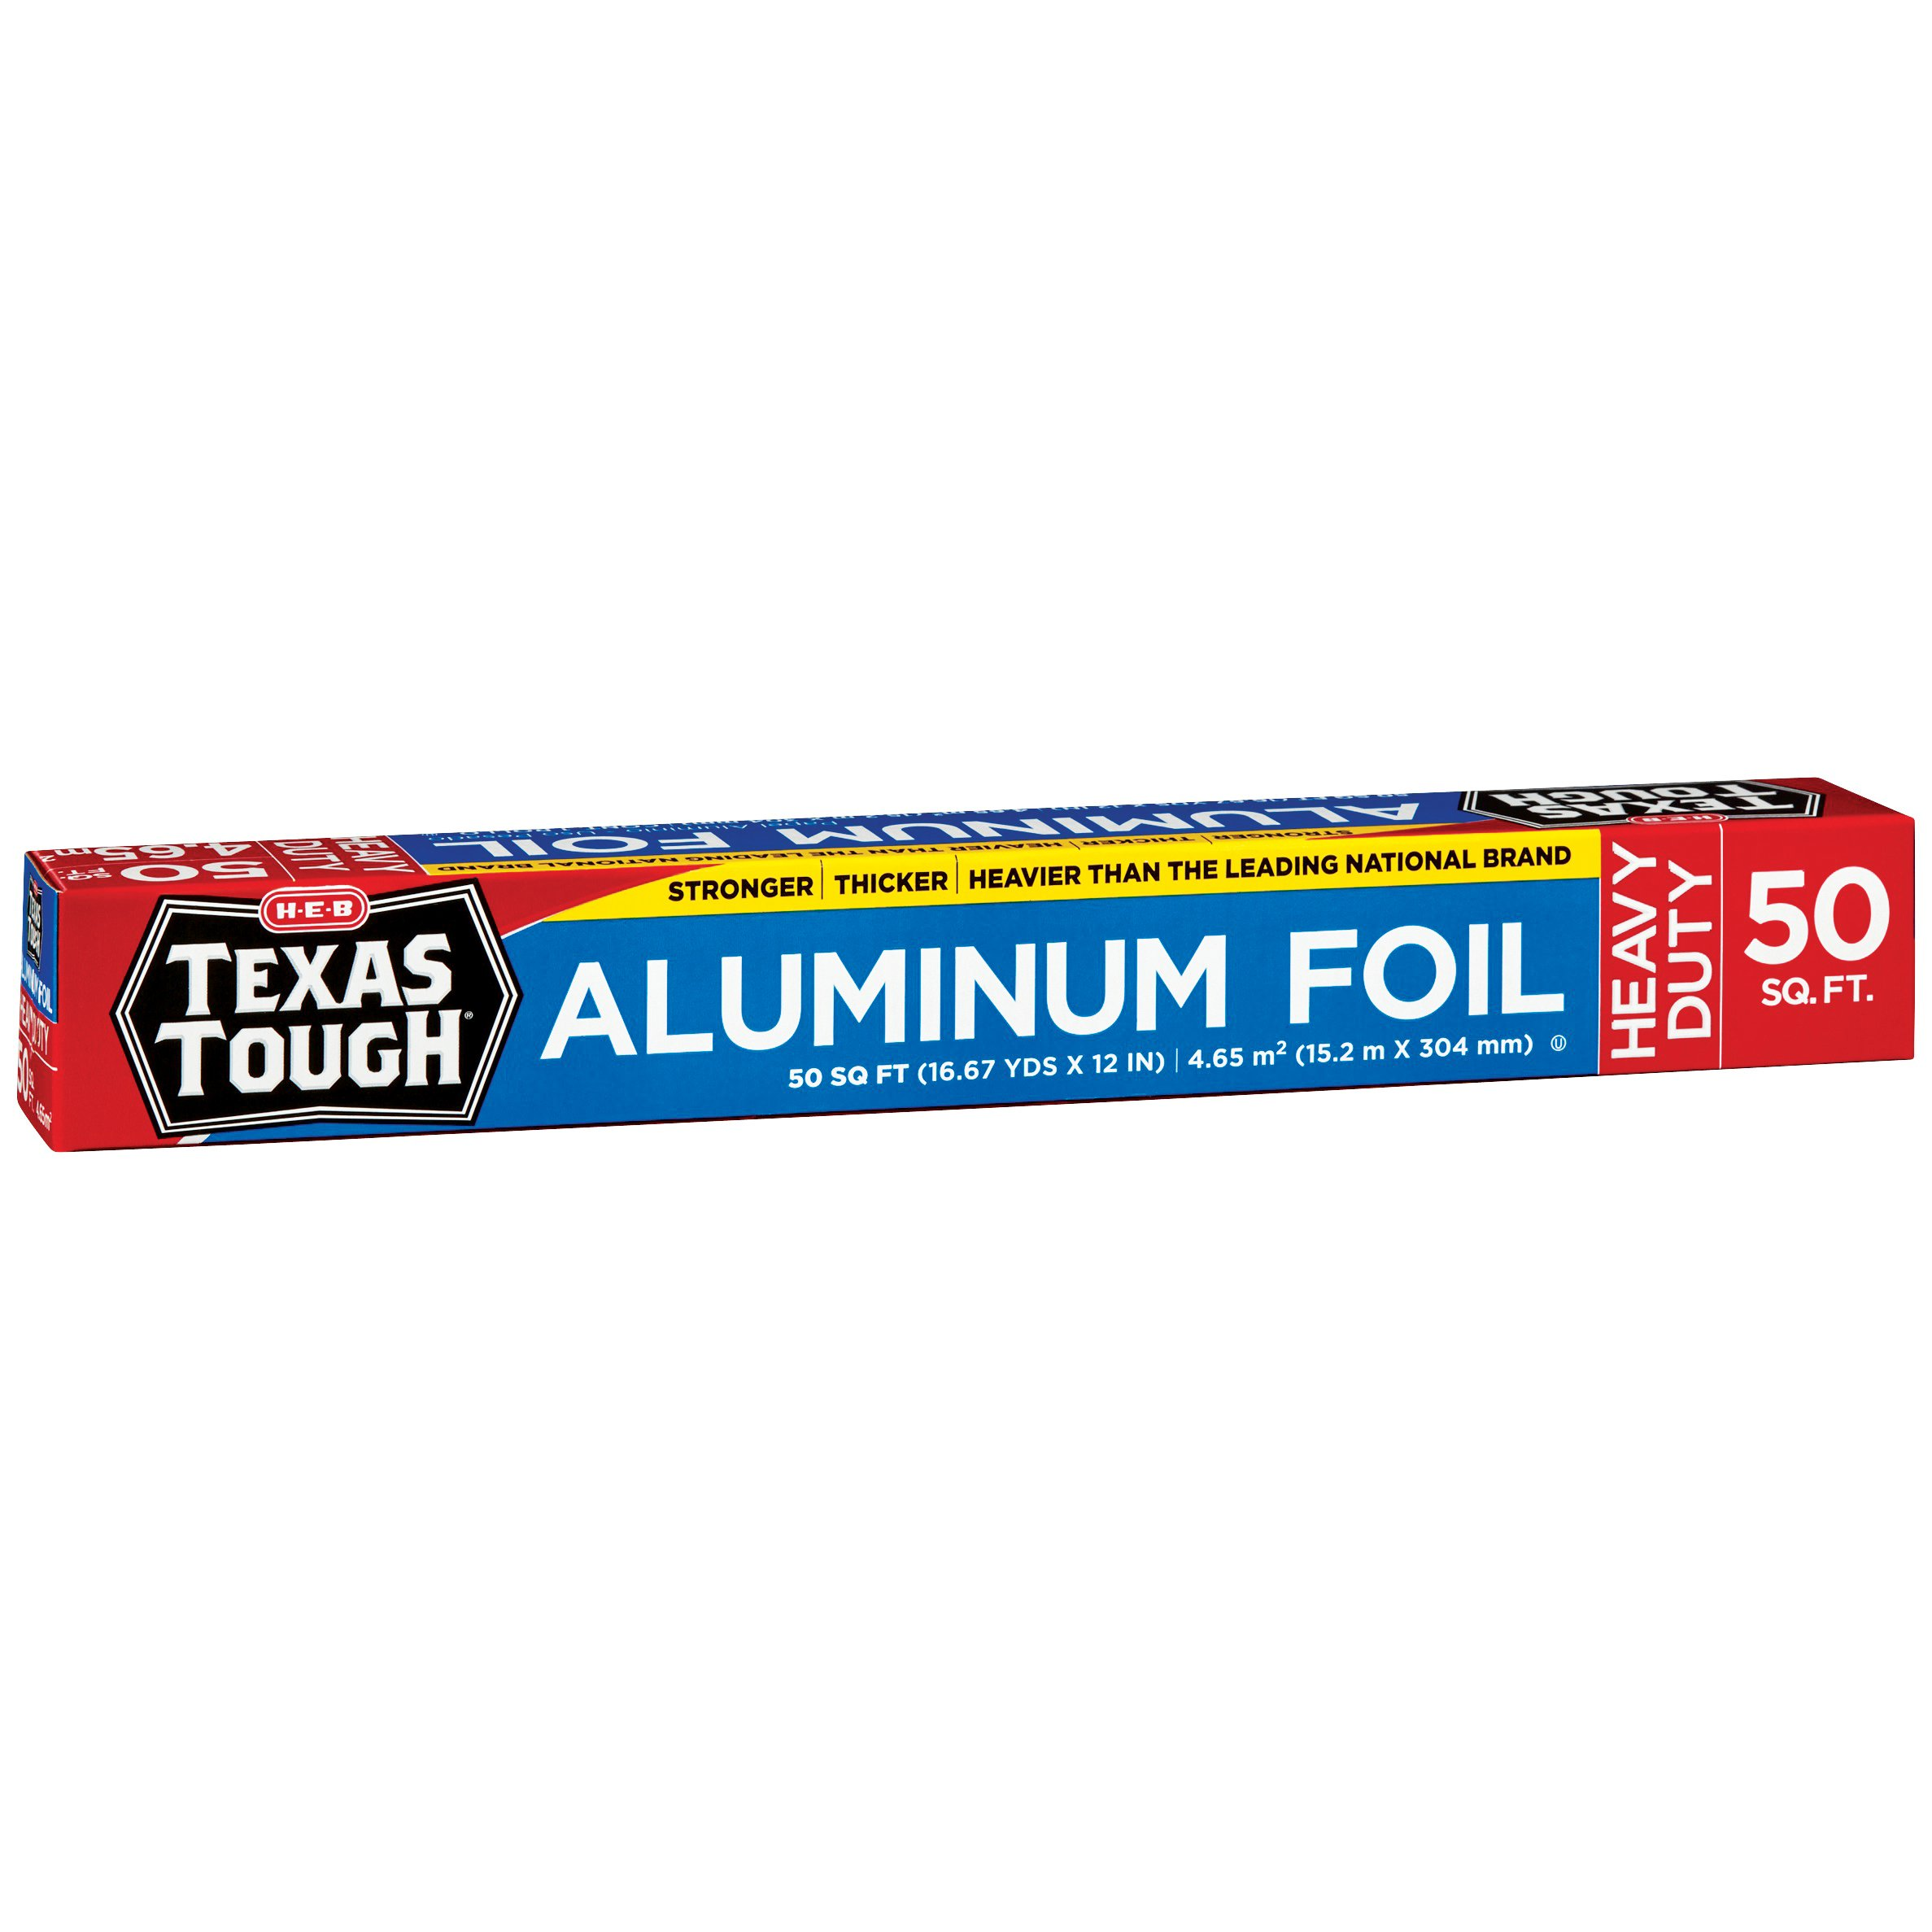 h u2011e u2011b texas tough heavy duty aluminum foil u2011 shop foil and baking